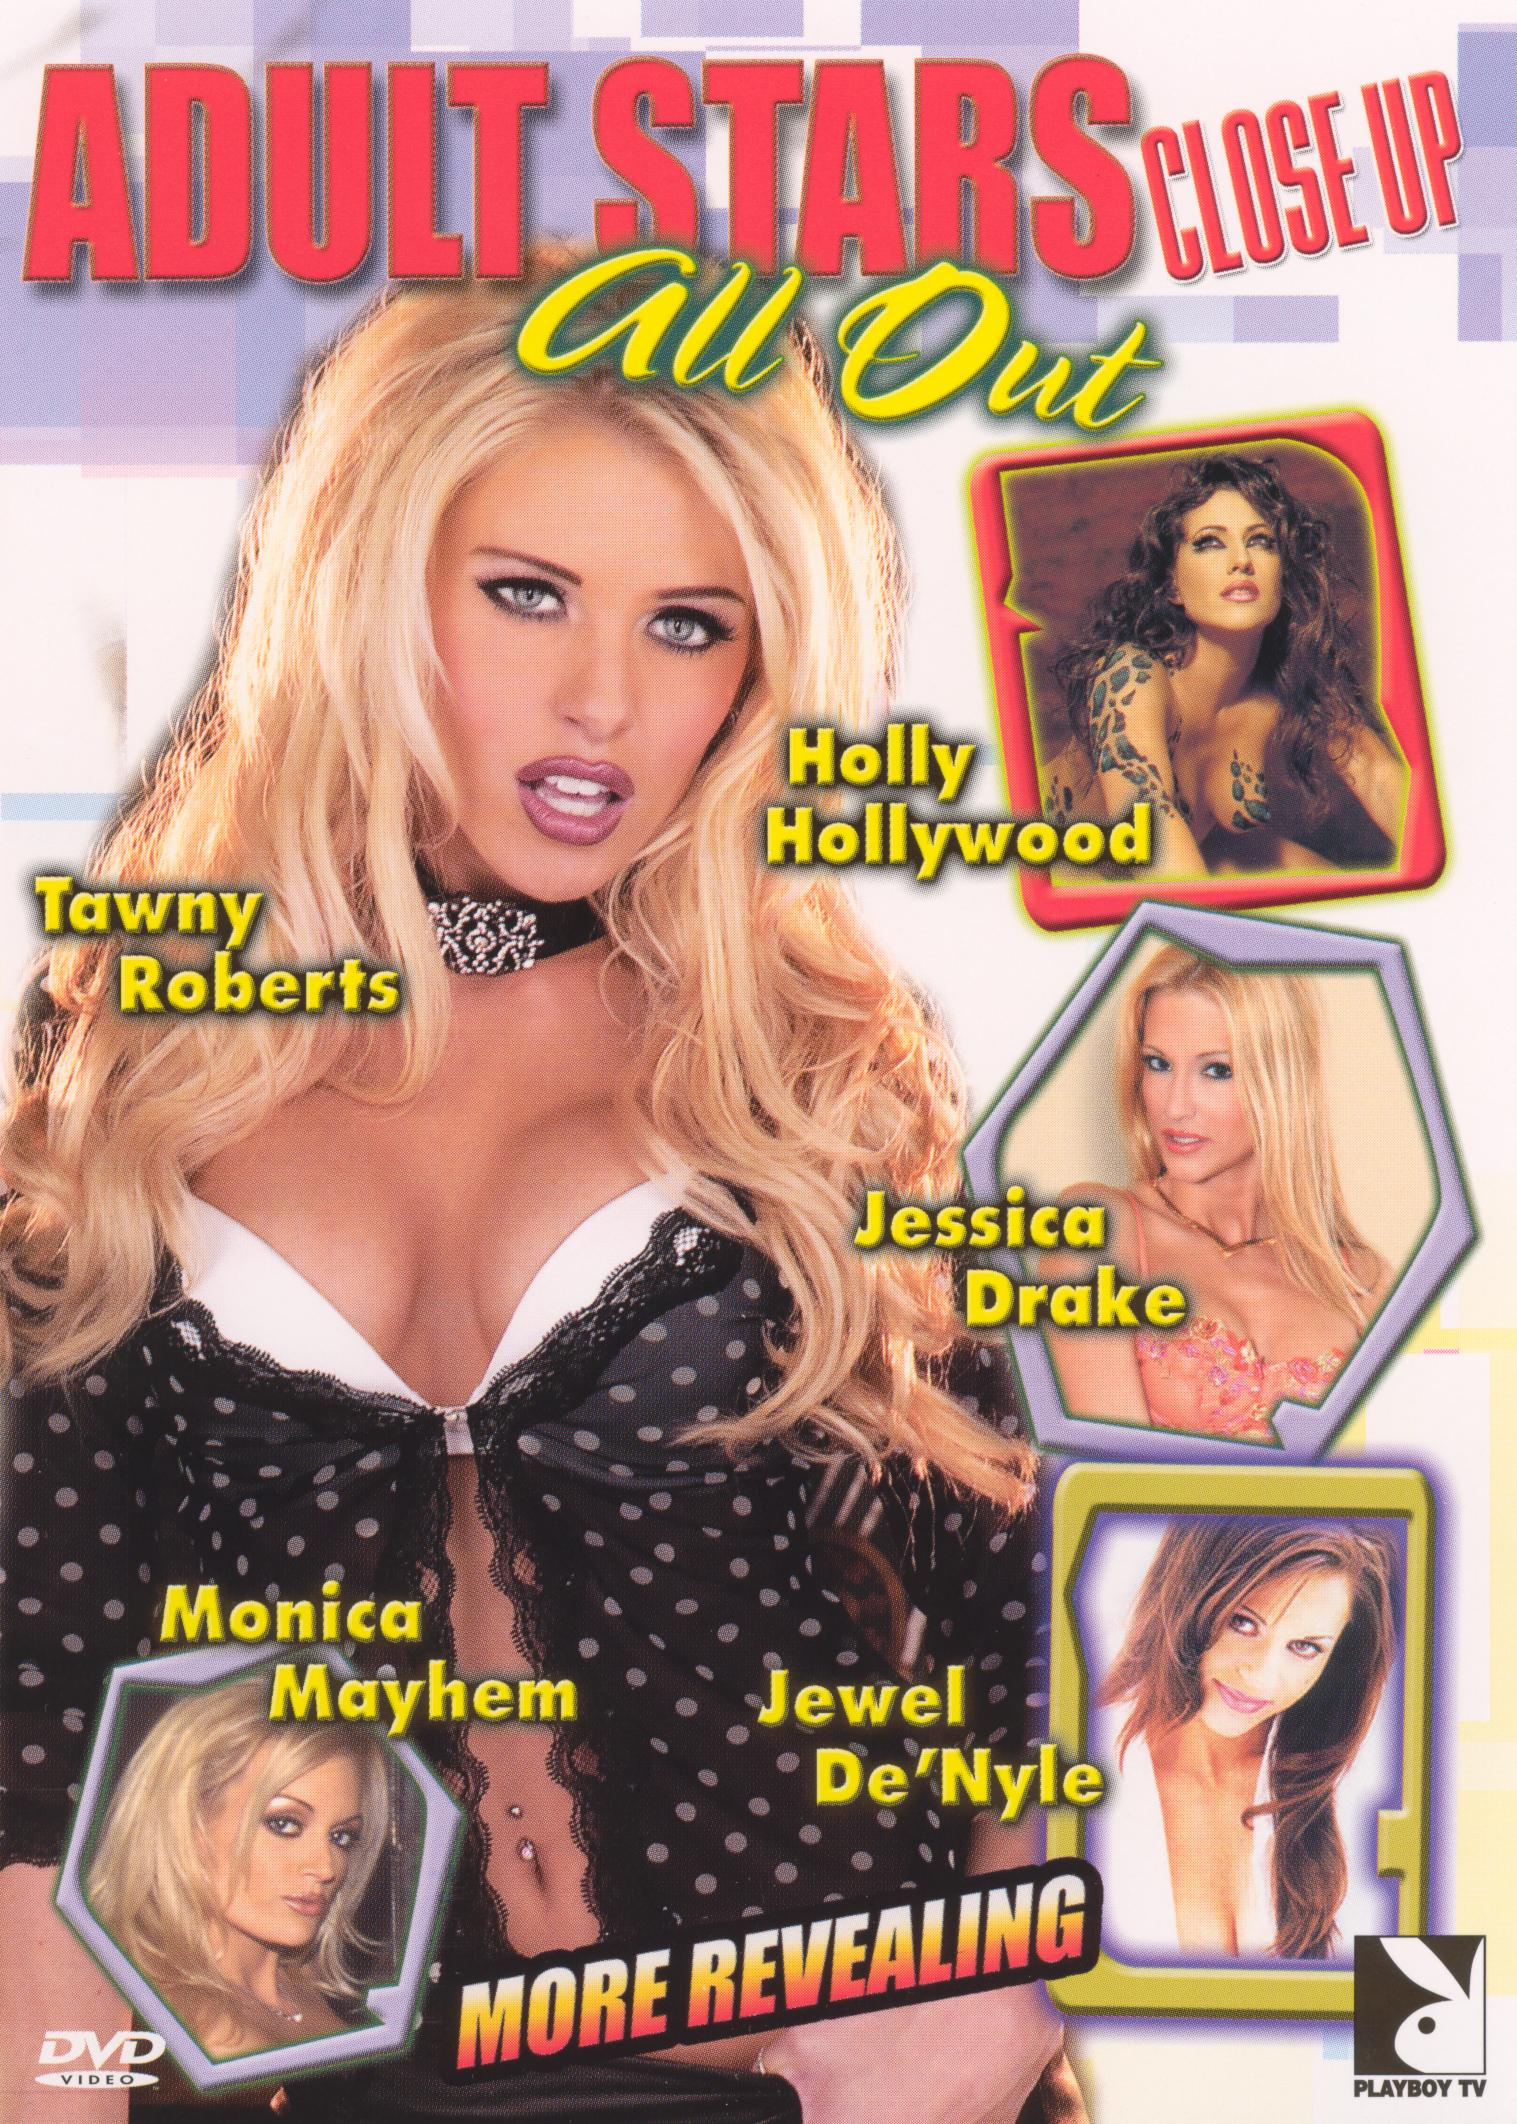 Playboy TV: Adult Stars Close Up - All Out